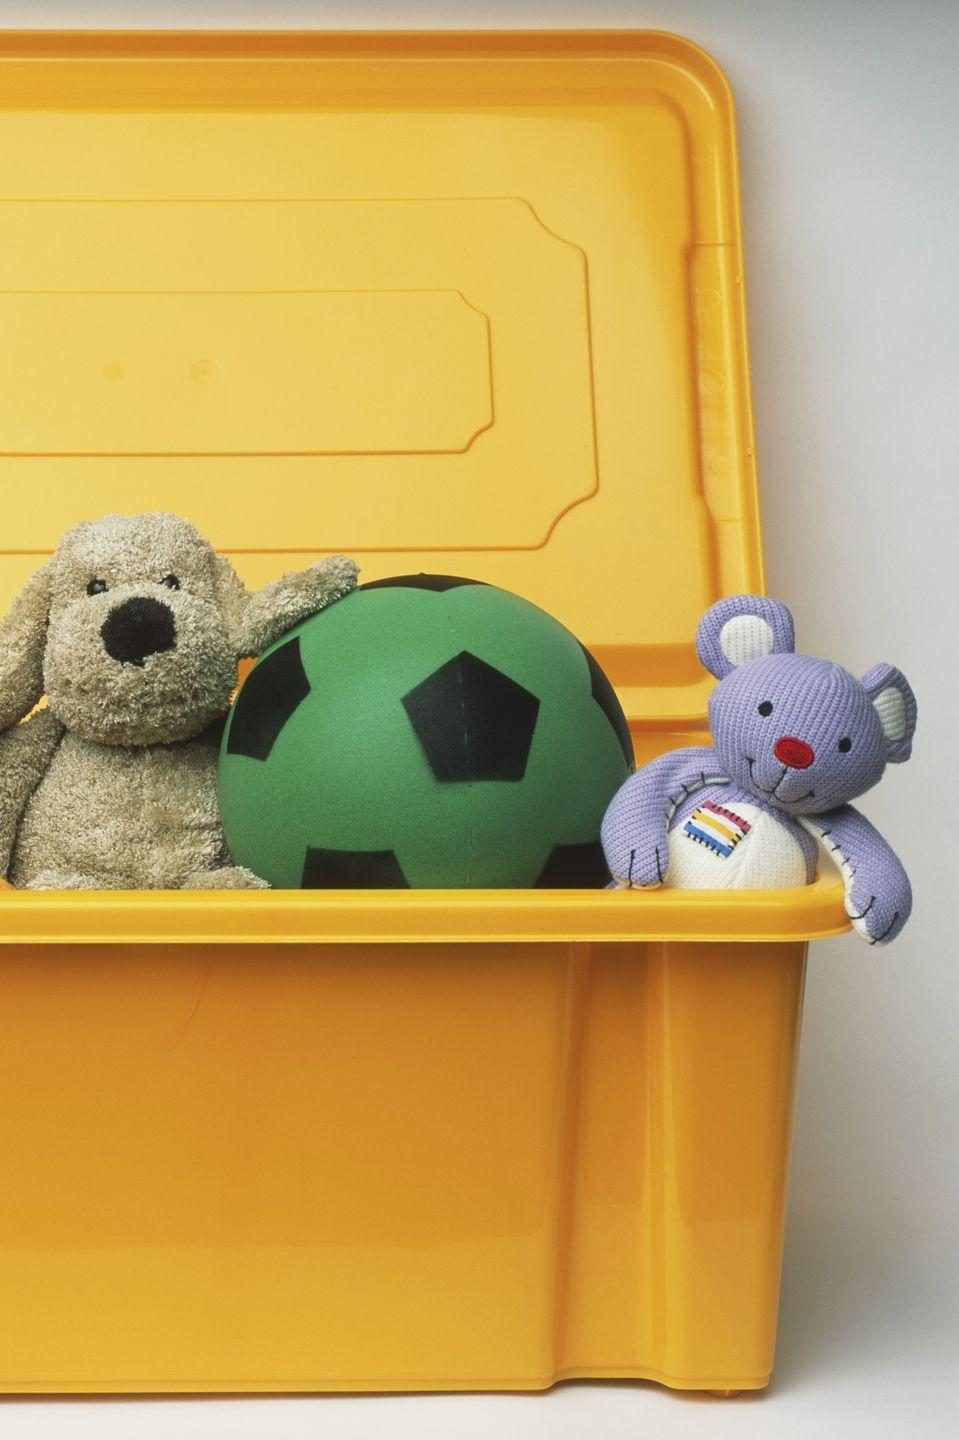 """<p>Leave a weatherproof, bench-style storage box outside for the kids' <a href=""""https://www.womansday.com/life/g982/gifts-for-kids/"""" rel=""""nofollow noopener"""" target=""""_blank"""" data-ylk=""""slk:outdoor toys"""" class=""""link rapid-noclick-resp"""">outdoor toys</a>.</p><p><strong><a class=""""link rapid-noclick-resp"""" href=""""https://www.amazon.com/Suncast-DBW7300-Mocha-Wicker-73-Gallon/dp/B0044V2ODW/?tag=syn-yahoo-20&ascsubtag=%5Bartid%7C10070.g.3310%5Bsrc%7Cyahoo-us"""" rel=""""nofollow noopener"""" target=""""_blank"""" data-ylk=""""slk:SHOP OUTDOOR BOXES"""">SHOP OUTDOOR BOXES</a></strong></p>"""